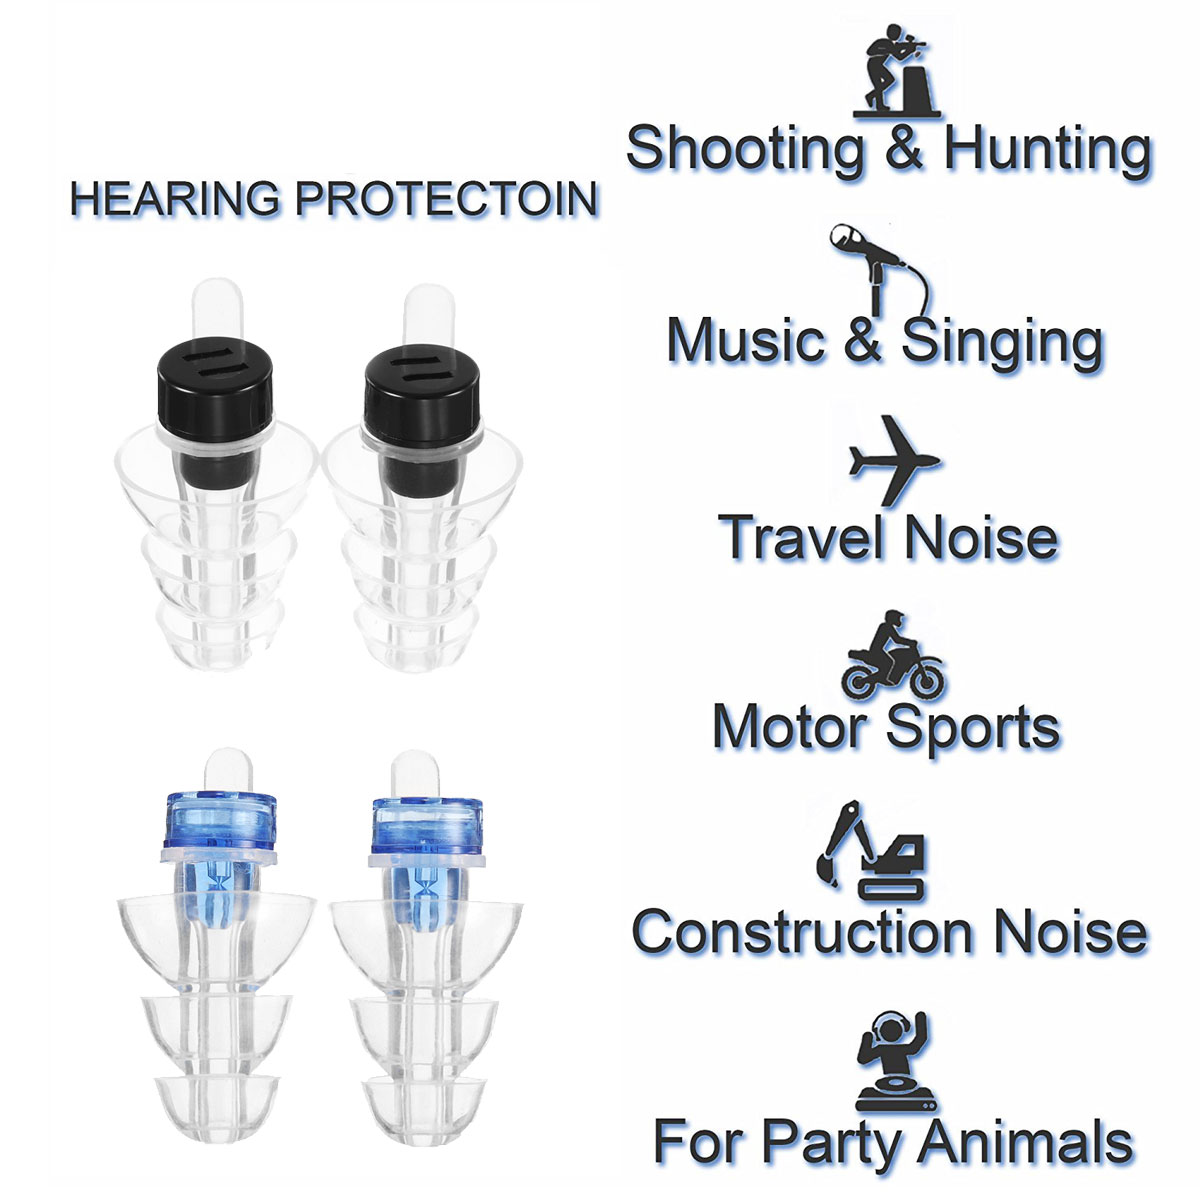 New Fashion Anti Noise Ear Plugs Sleep Noise Reduction Cancelling Musician Hearing Protection Earplugs For Sleep Concert Bar Drummer Health Workplace Safety Supplies